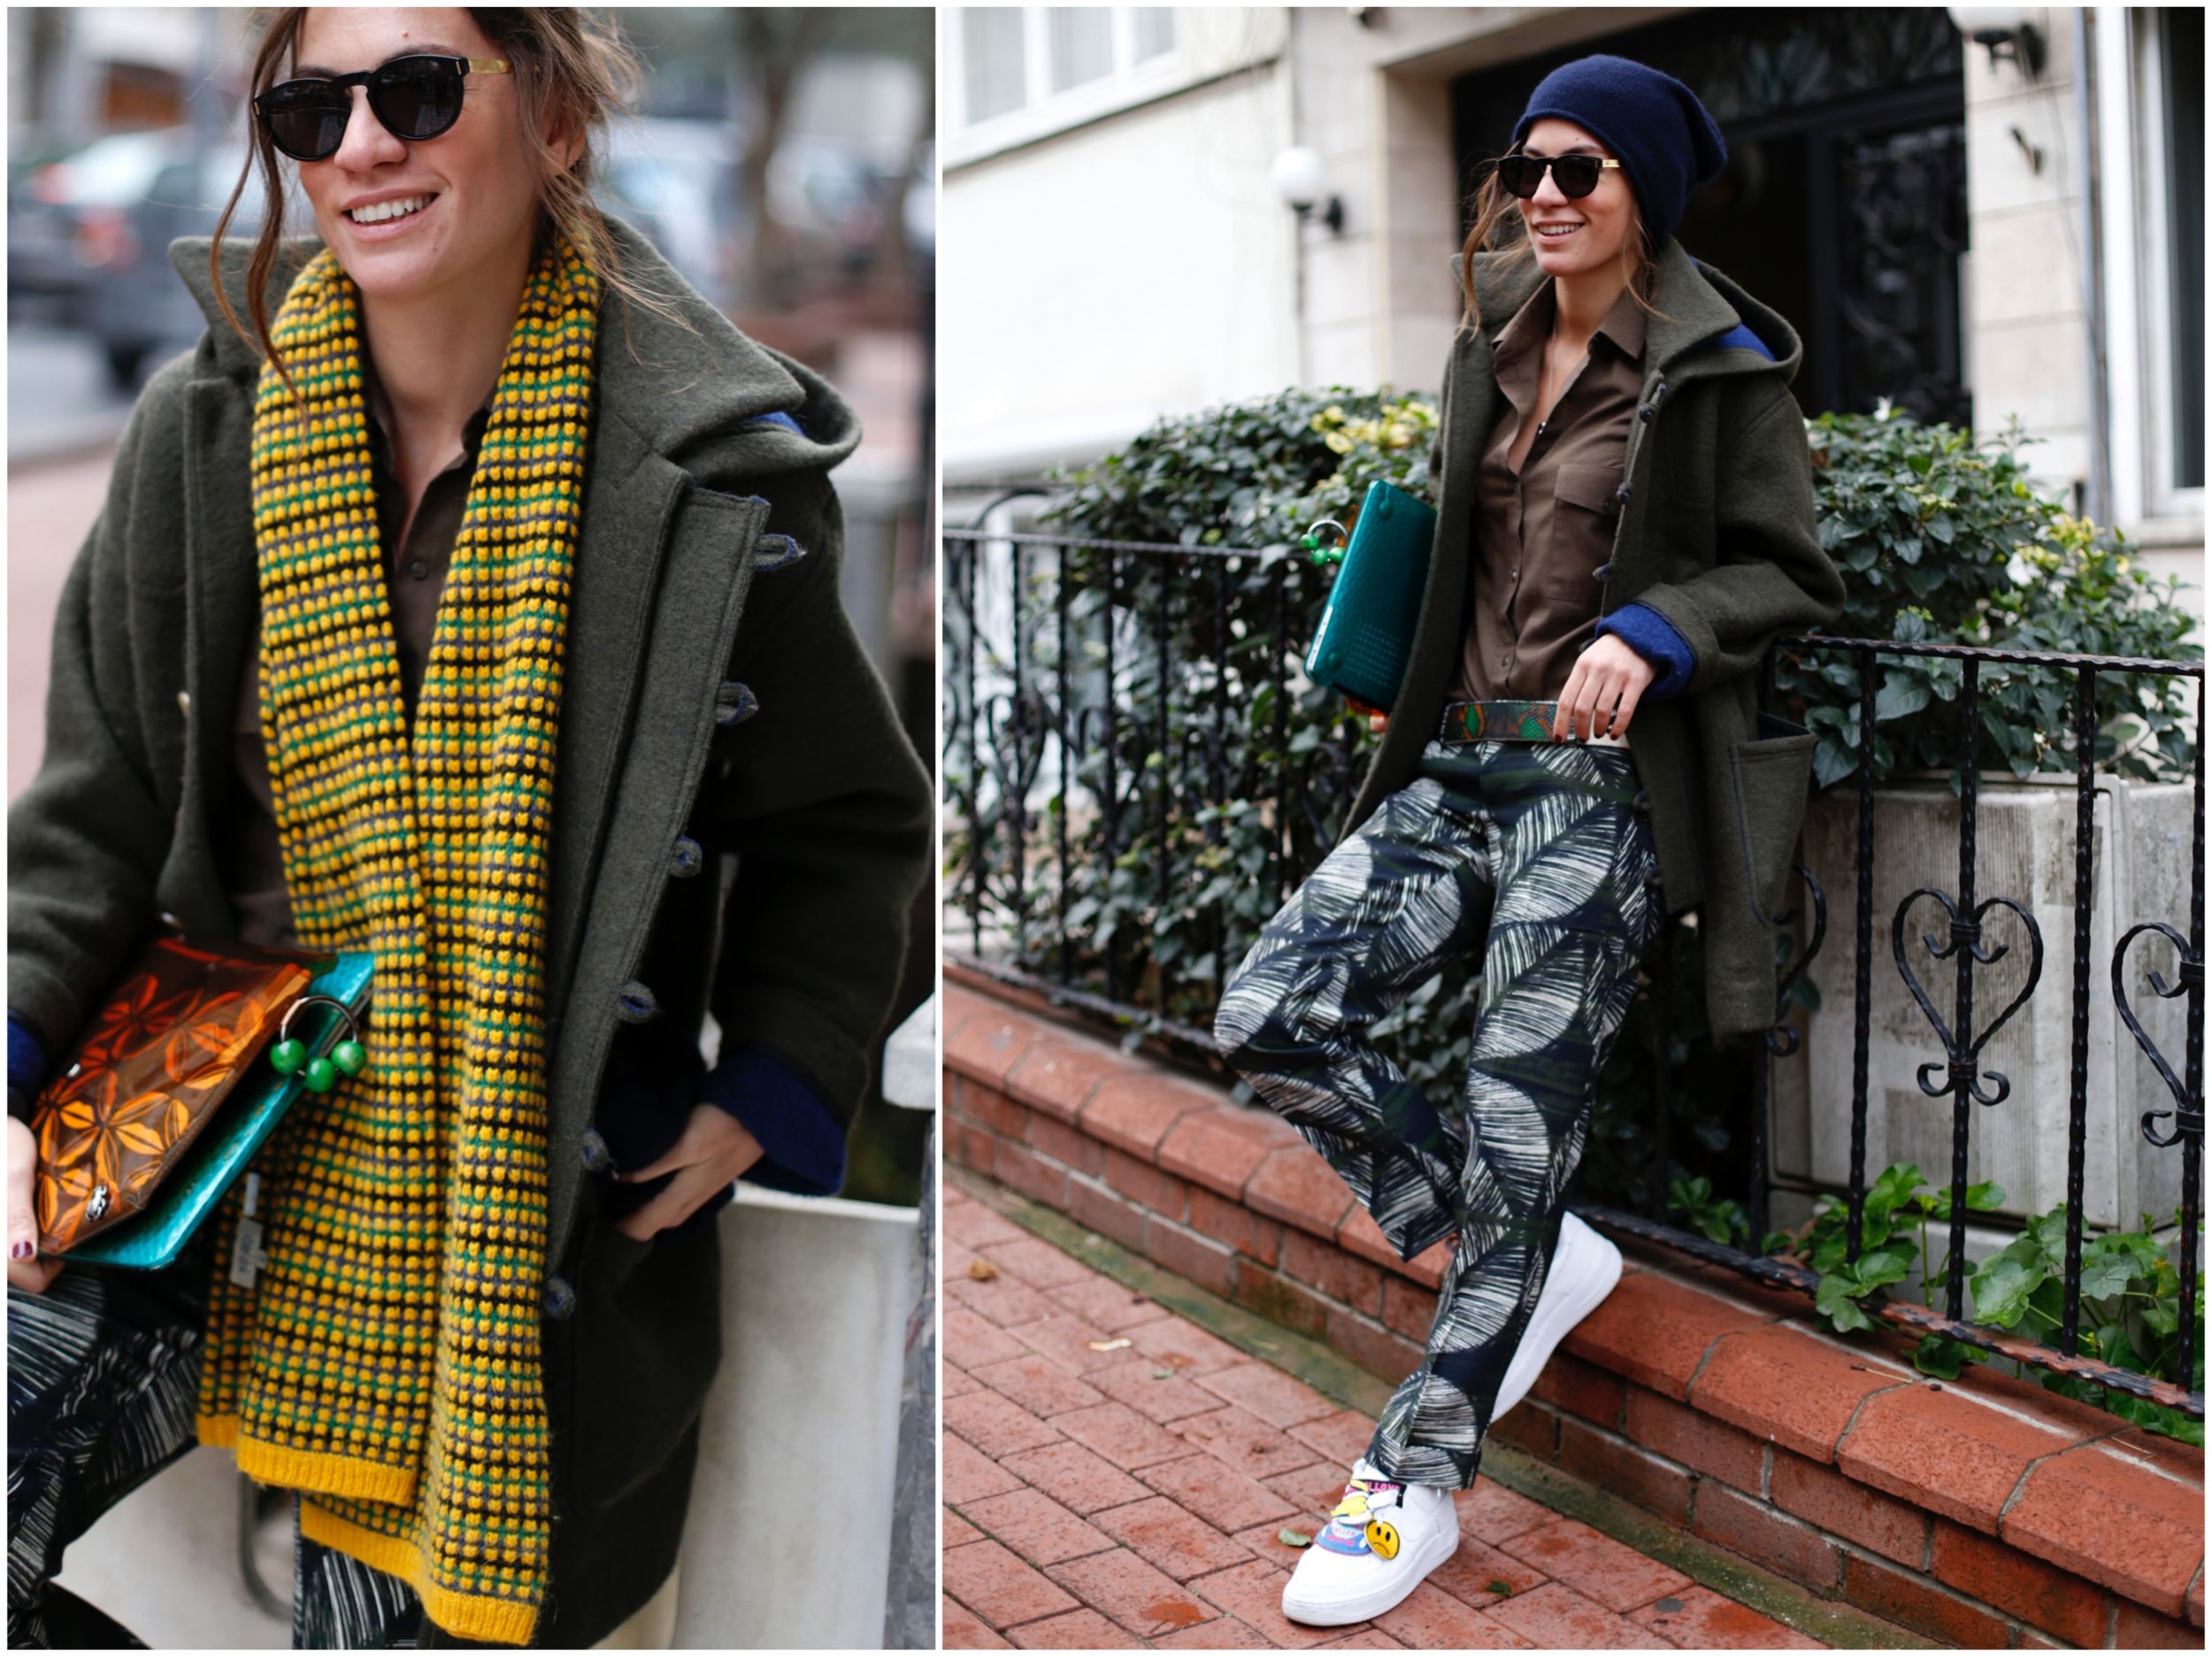 billur saatci, turkish blogger, off ne giysem, street style, zara, kenzo, currentt/elliott, maid in love, super sunglasses, third clutch, dsquared